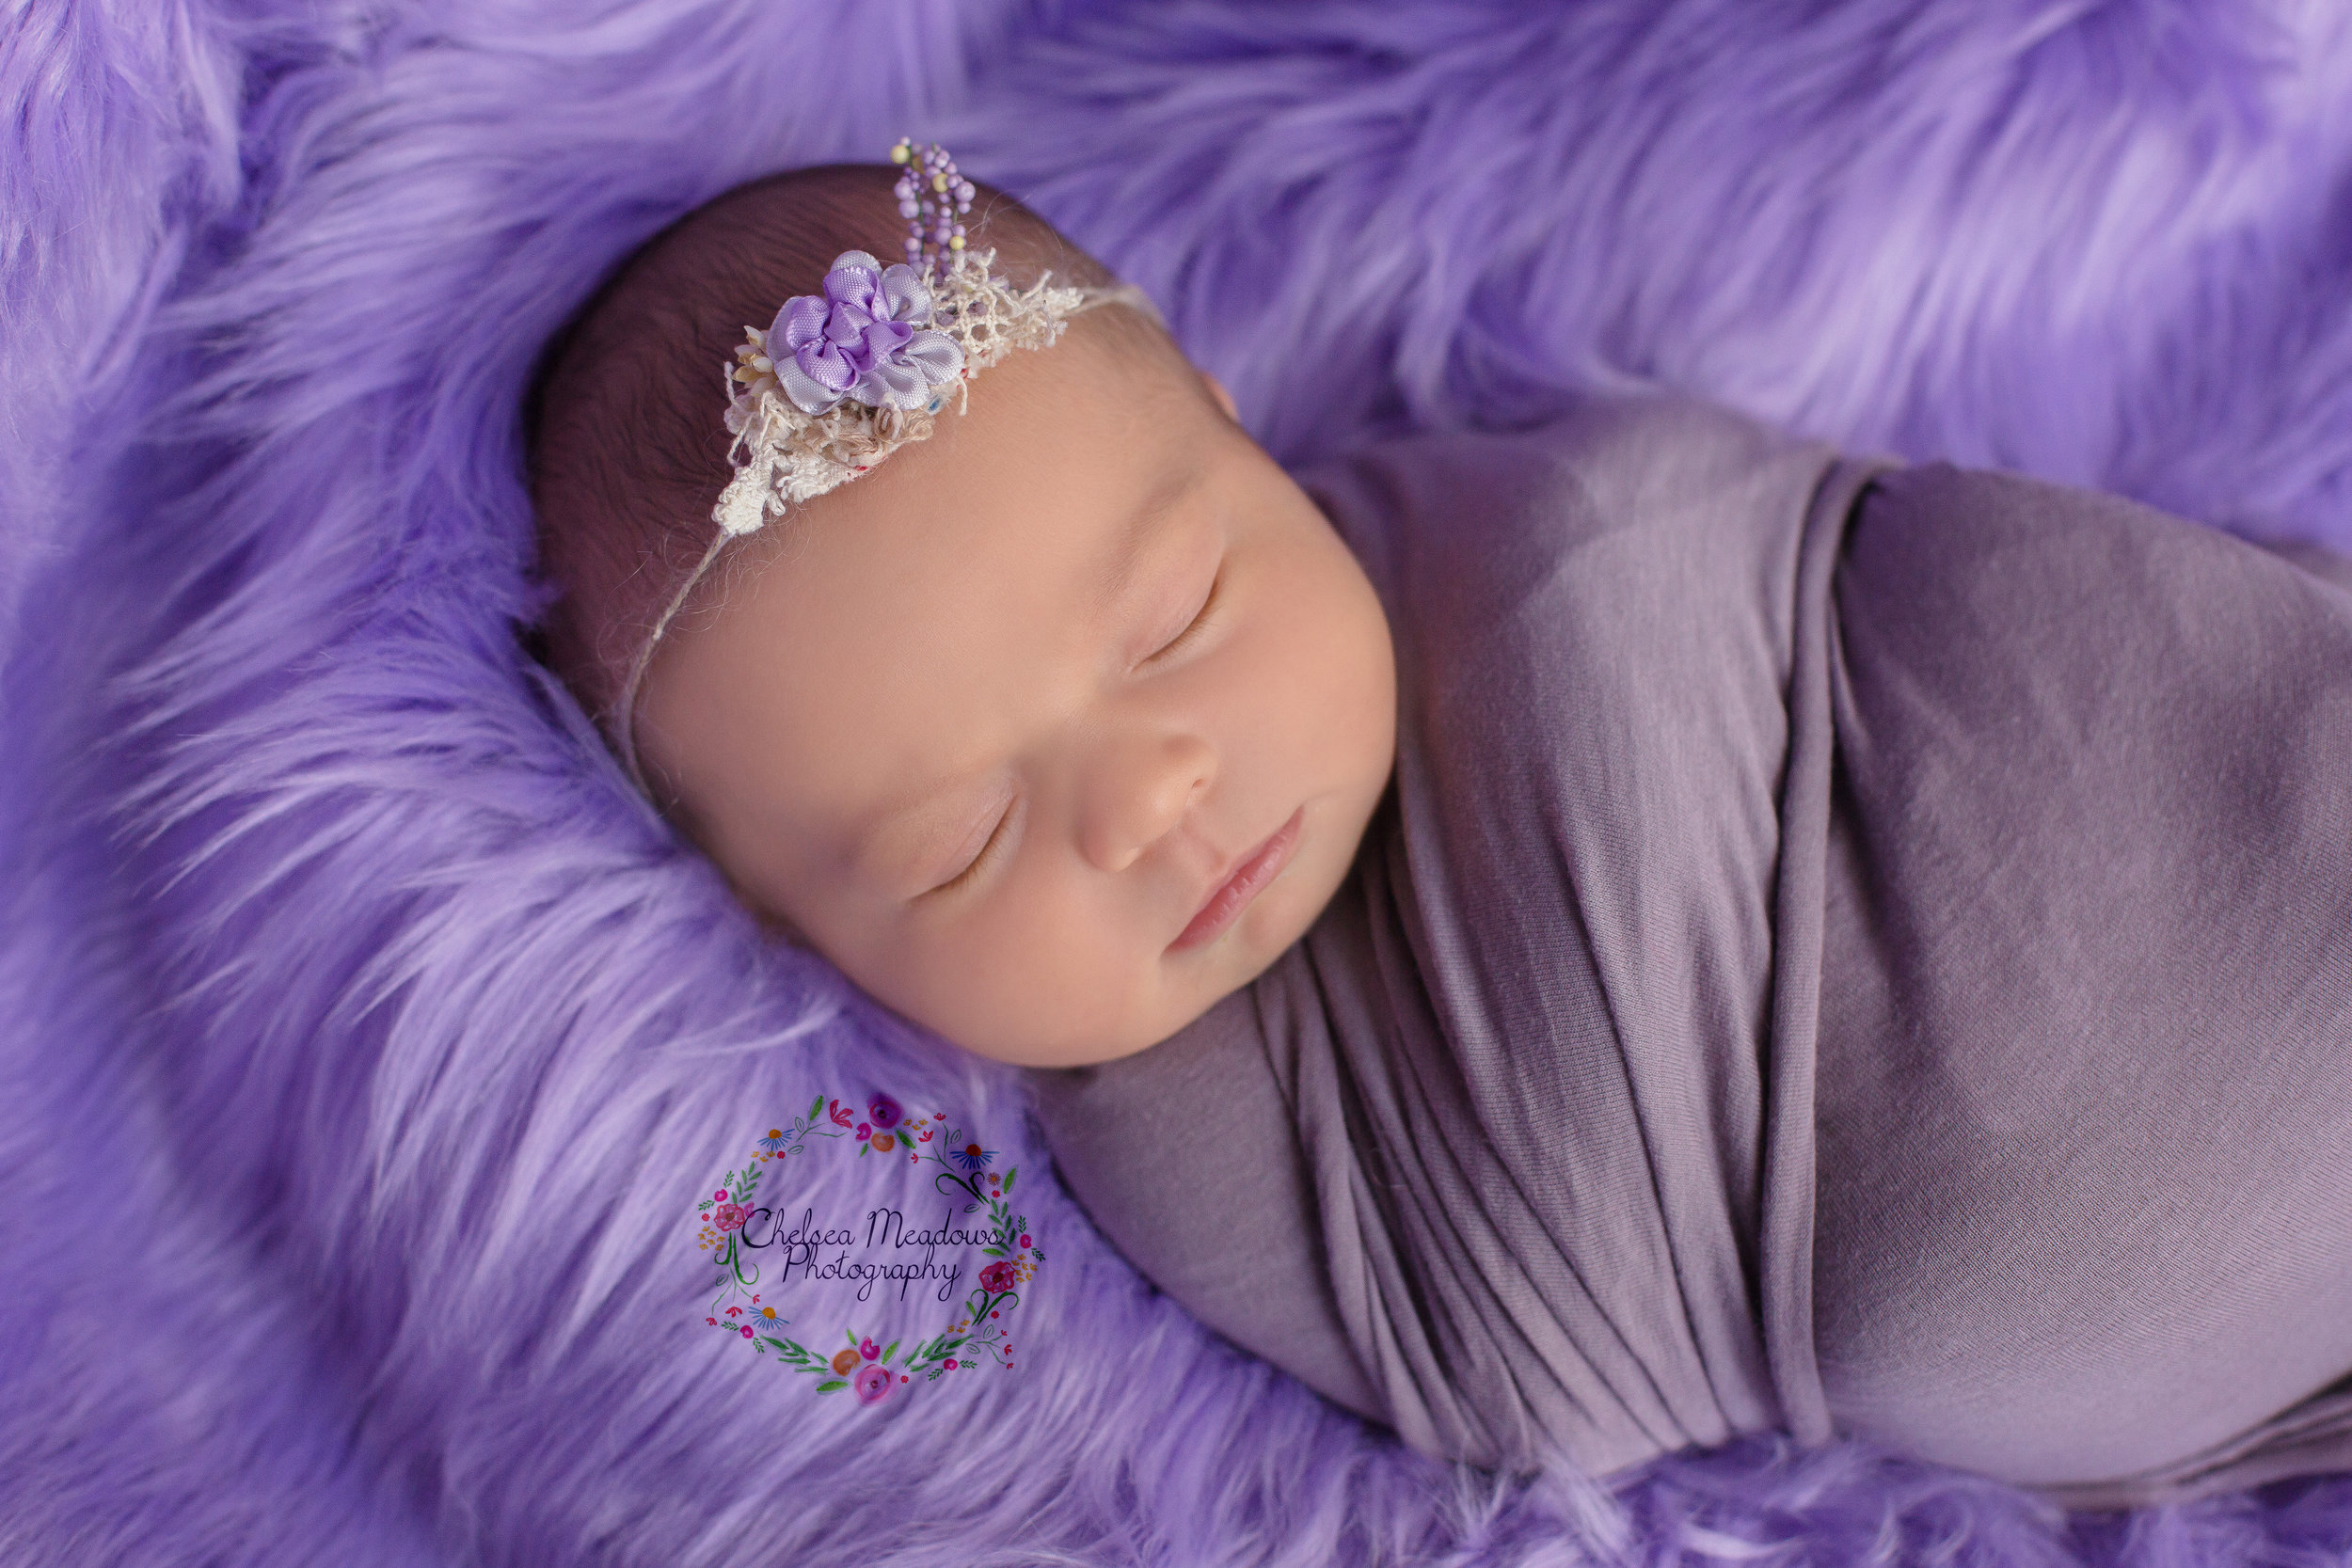 Ella Newborn Photos - Nashville Newborn Photographer - Chelsea Meadows Photography (42).jpg